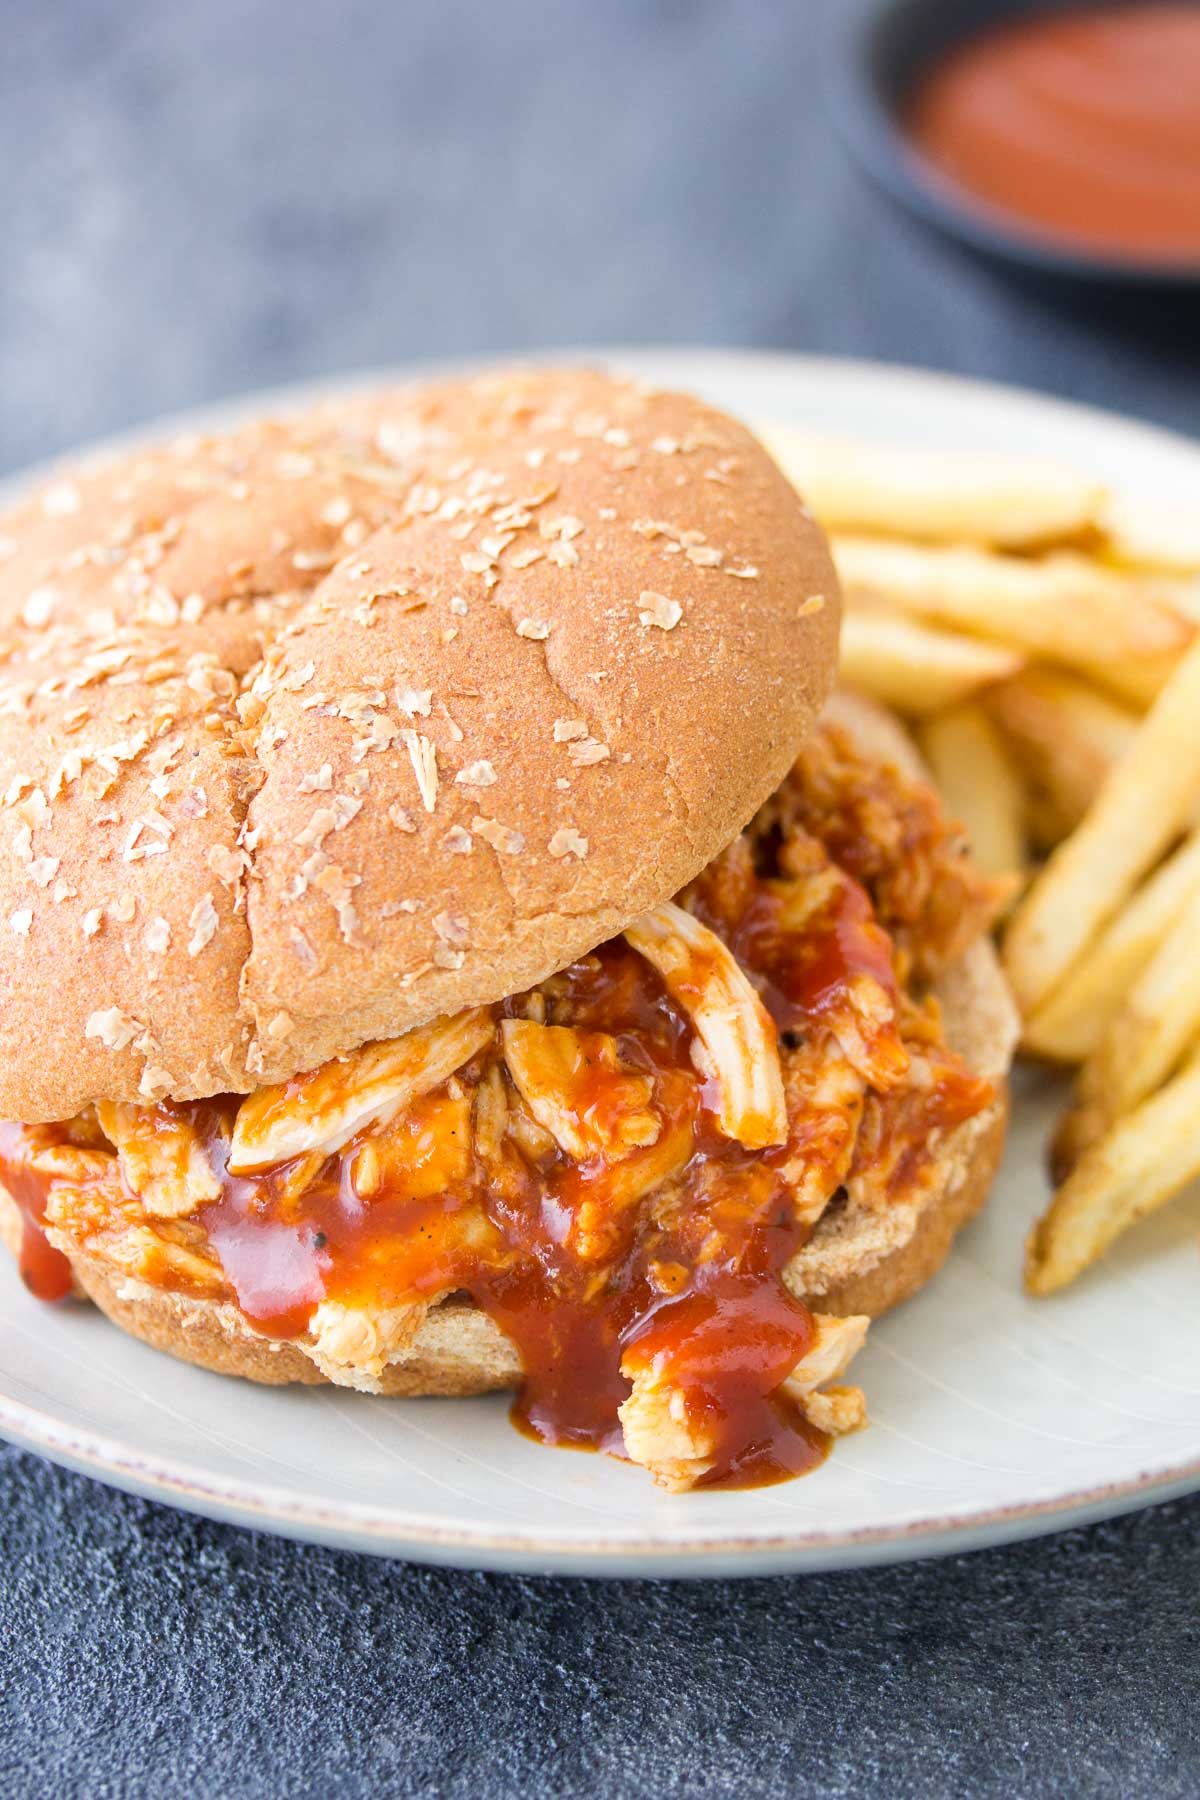 bbq chicken served on a burger bun with french fries